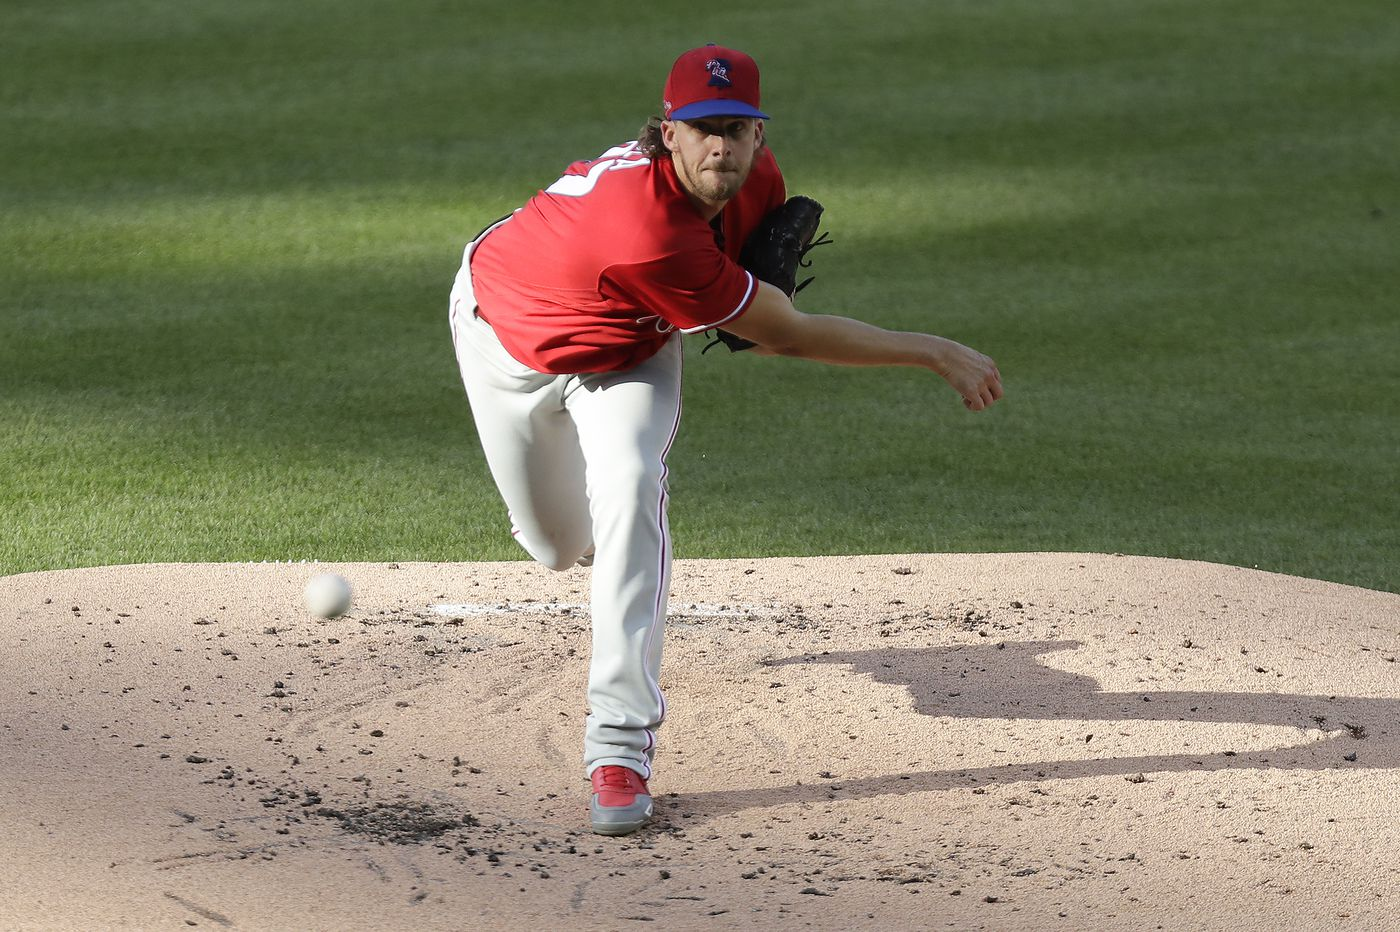 Aaron Nola will start opener for Phillies, rest of rotation order is unclear